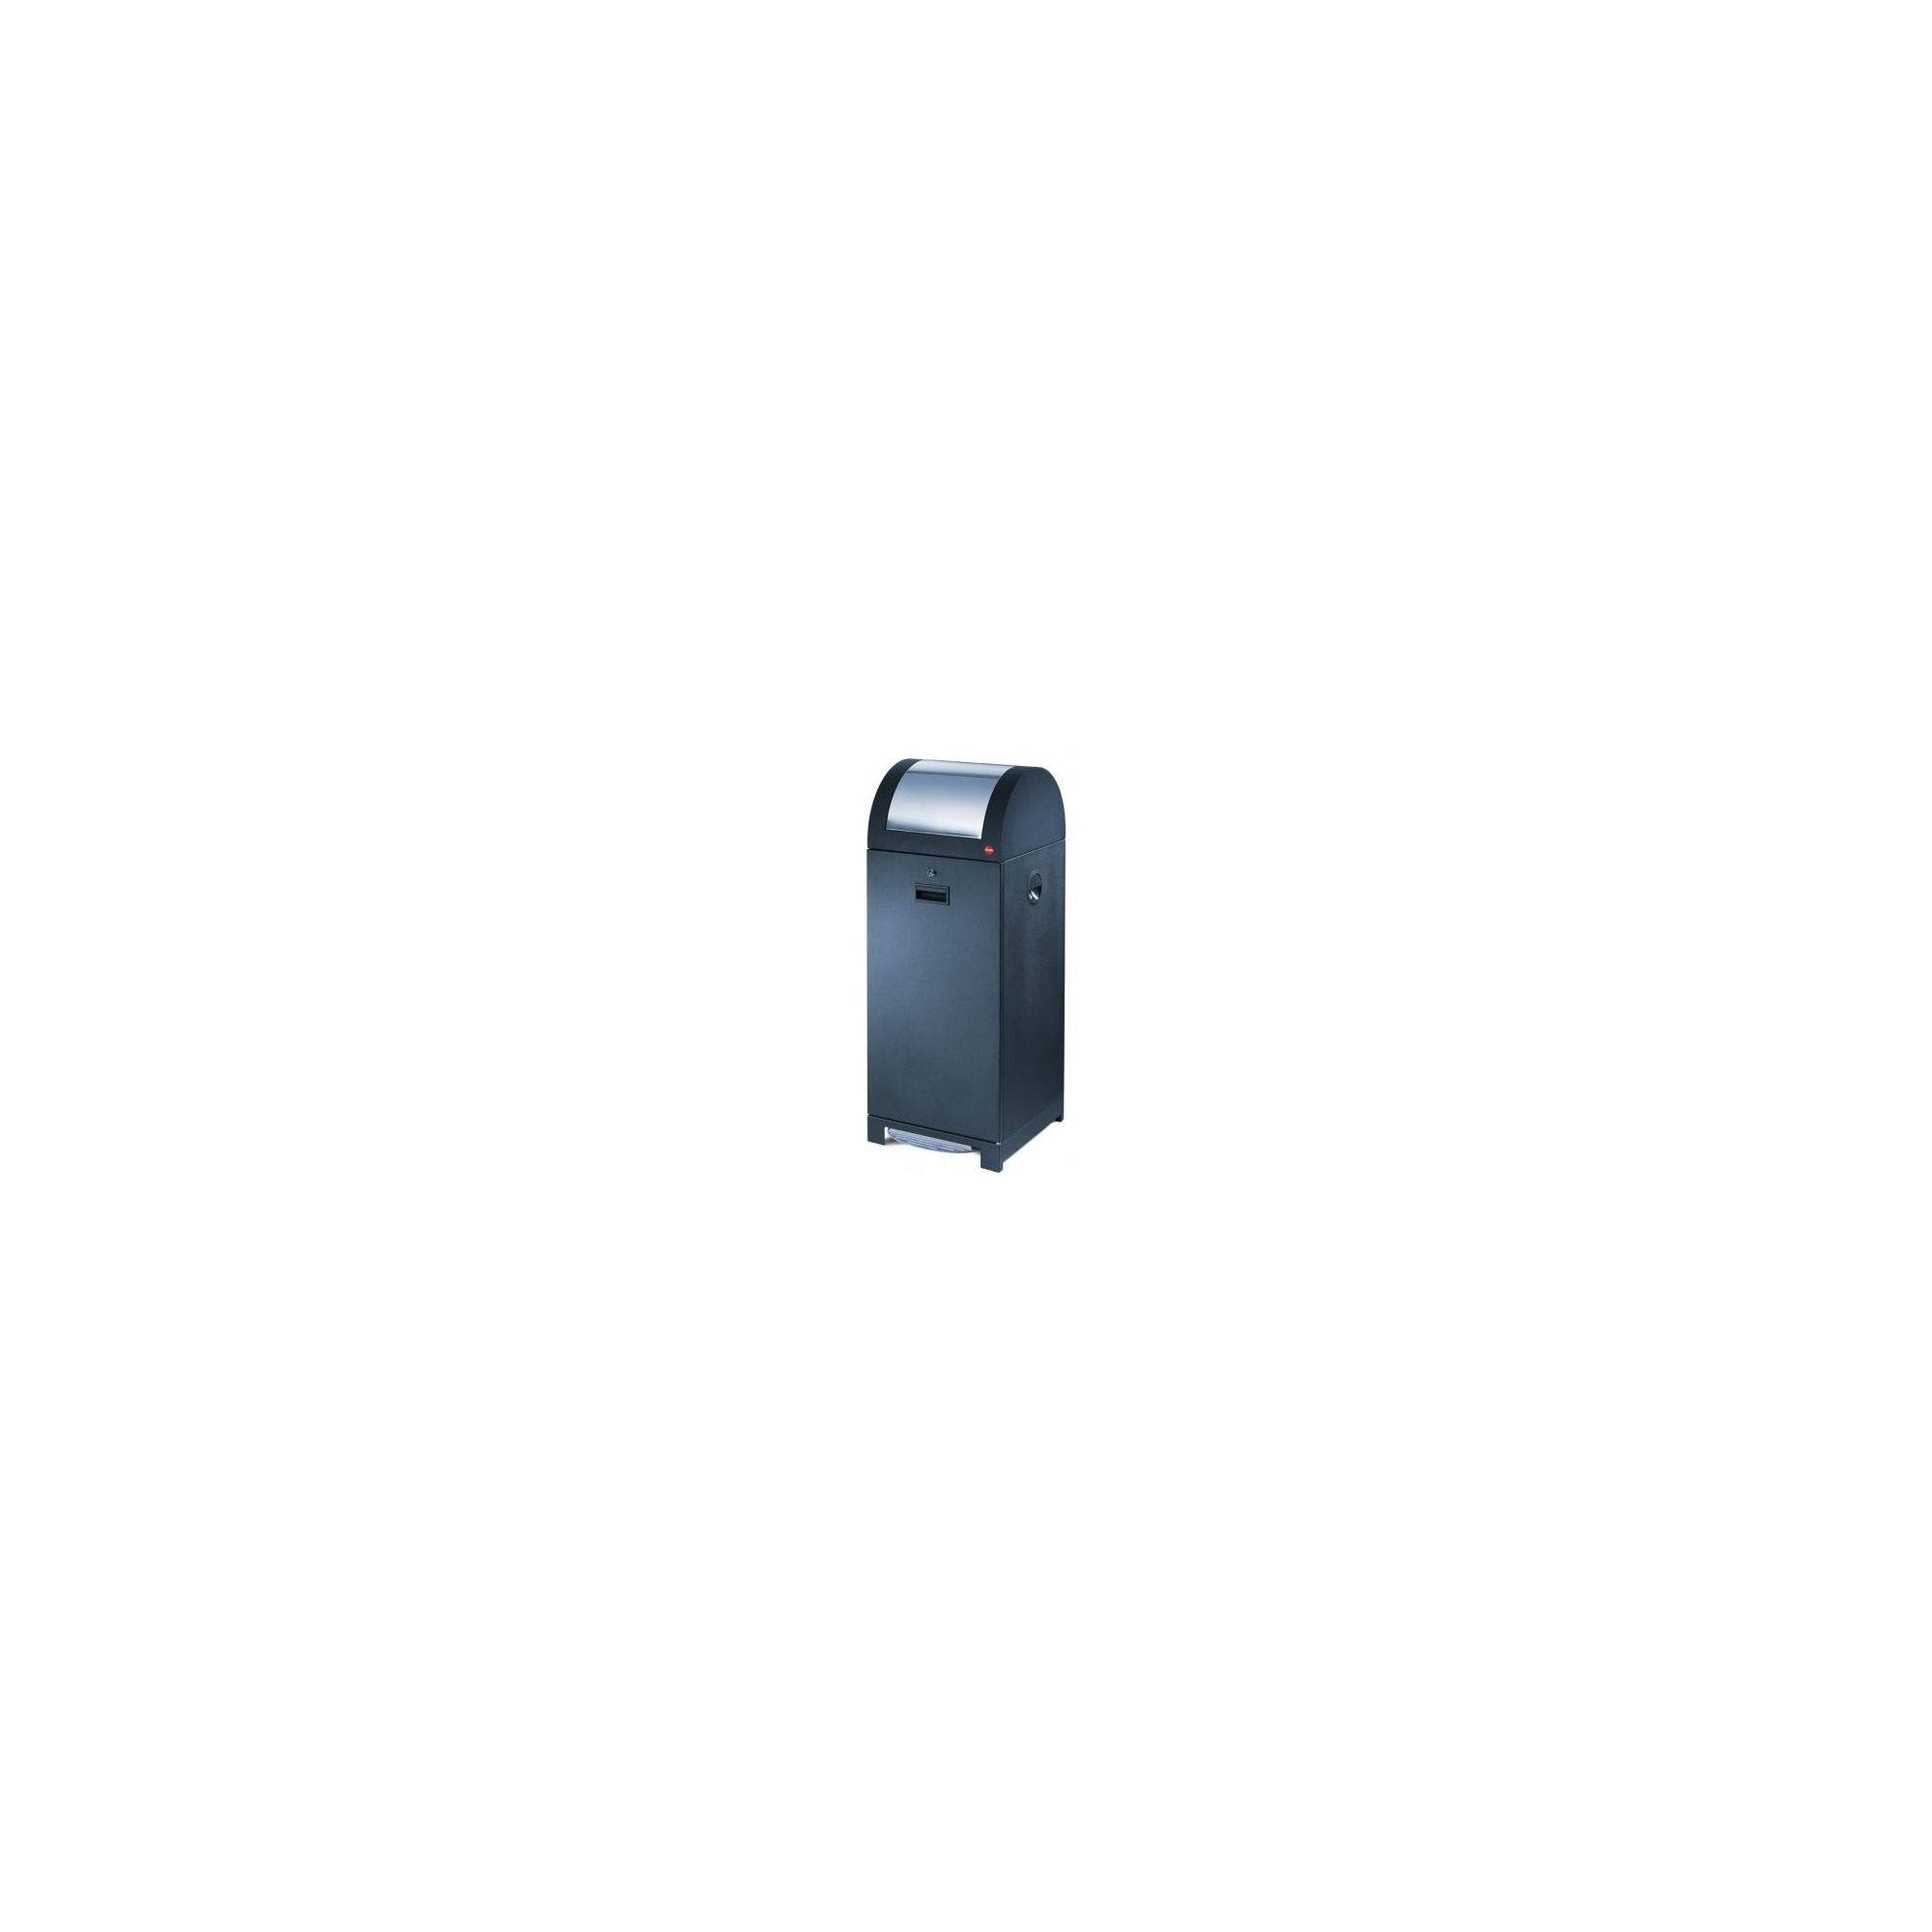 Hailo ProfiLine WSB Design 70 Recycling and Waste Bin in Black with Bin Liner Holder at Tesco Direct